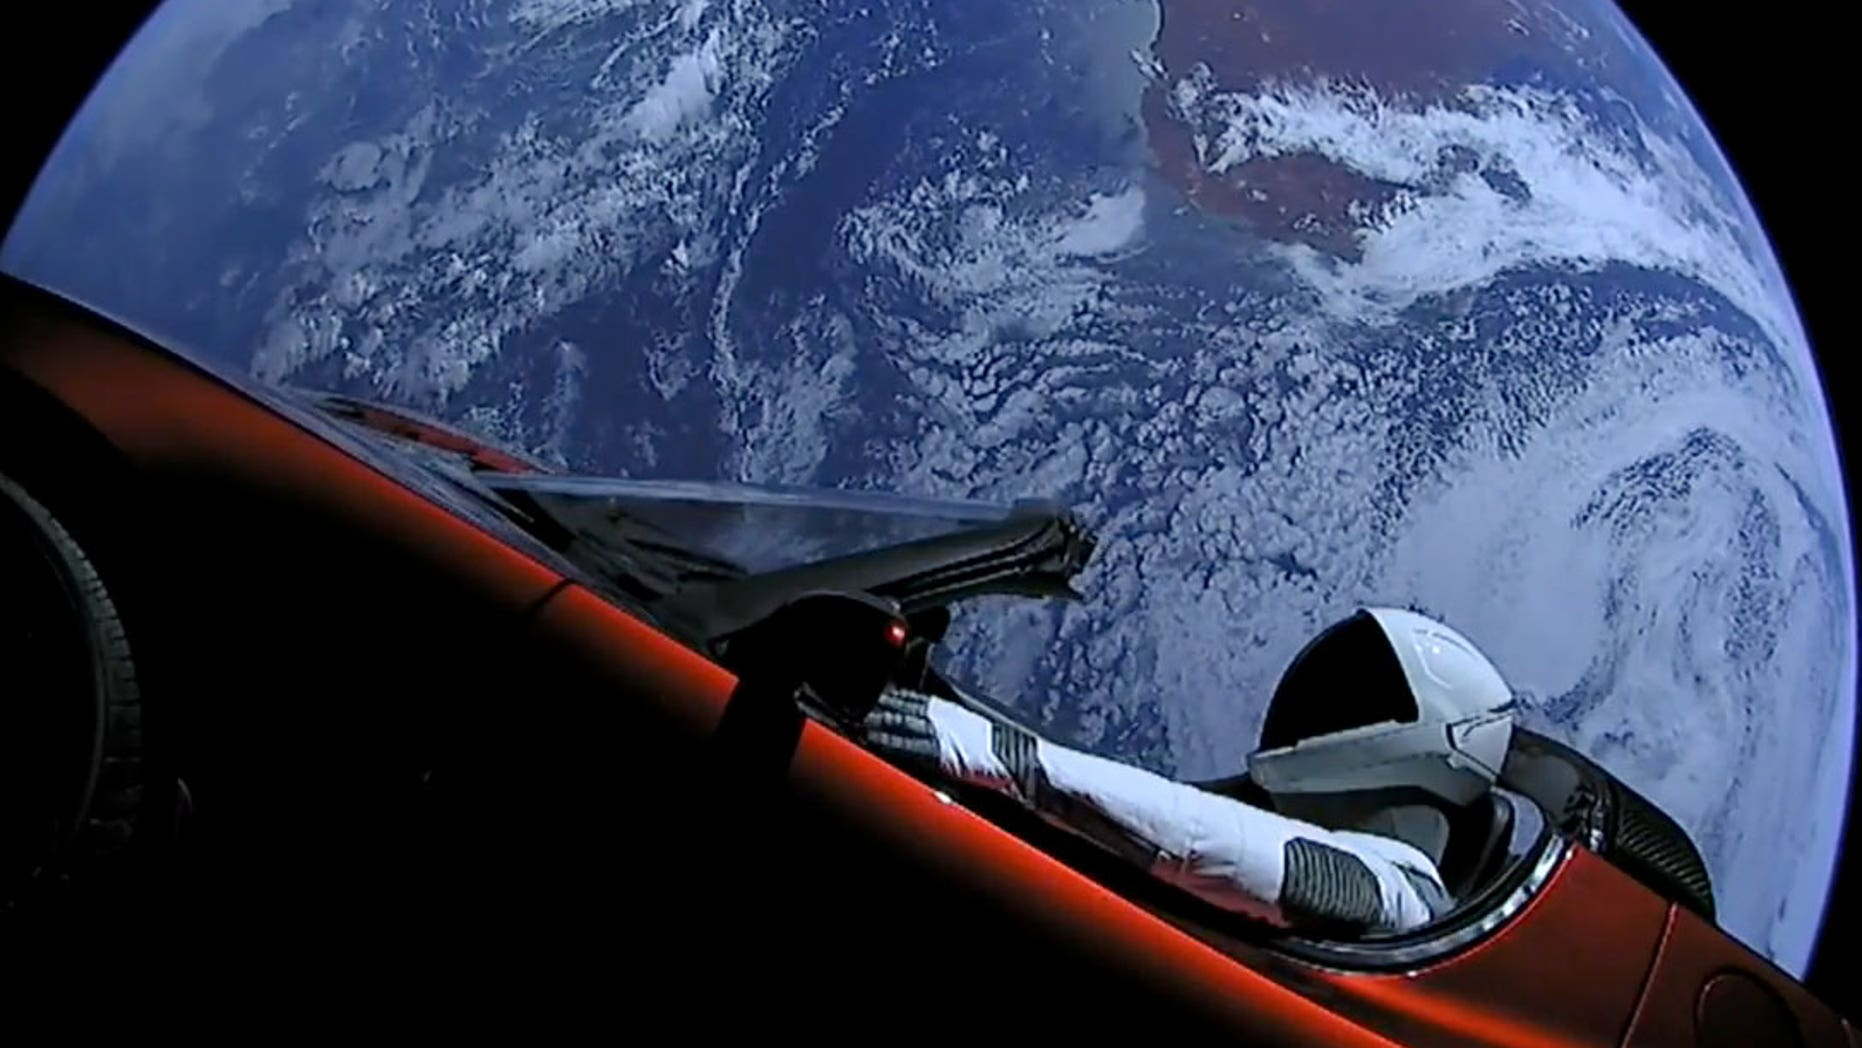 SpaceX's Starman mannequin is seen inside Elon Musk's red Tesla Roadster with Earth in the background, shortly after launch on Feb. 6, 2018. As of Nov. 2, the duo were beyond the orbit of Mars.